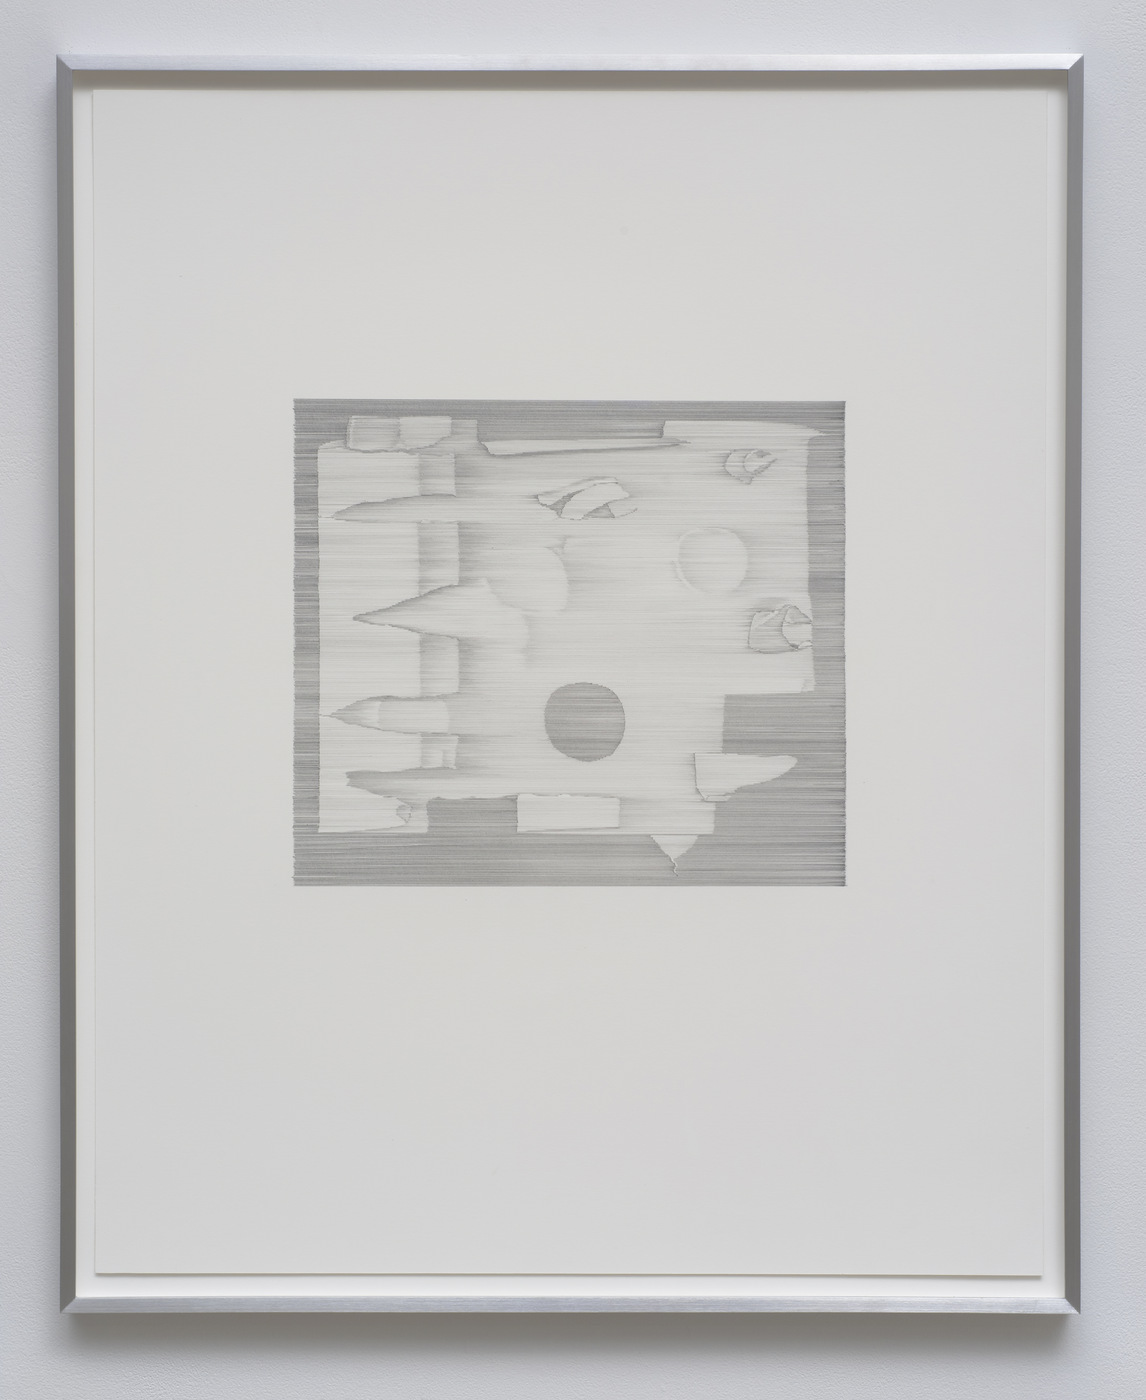 dm_2014_Machine drawing no. 4_framed